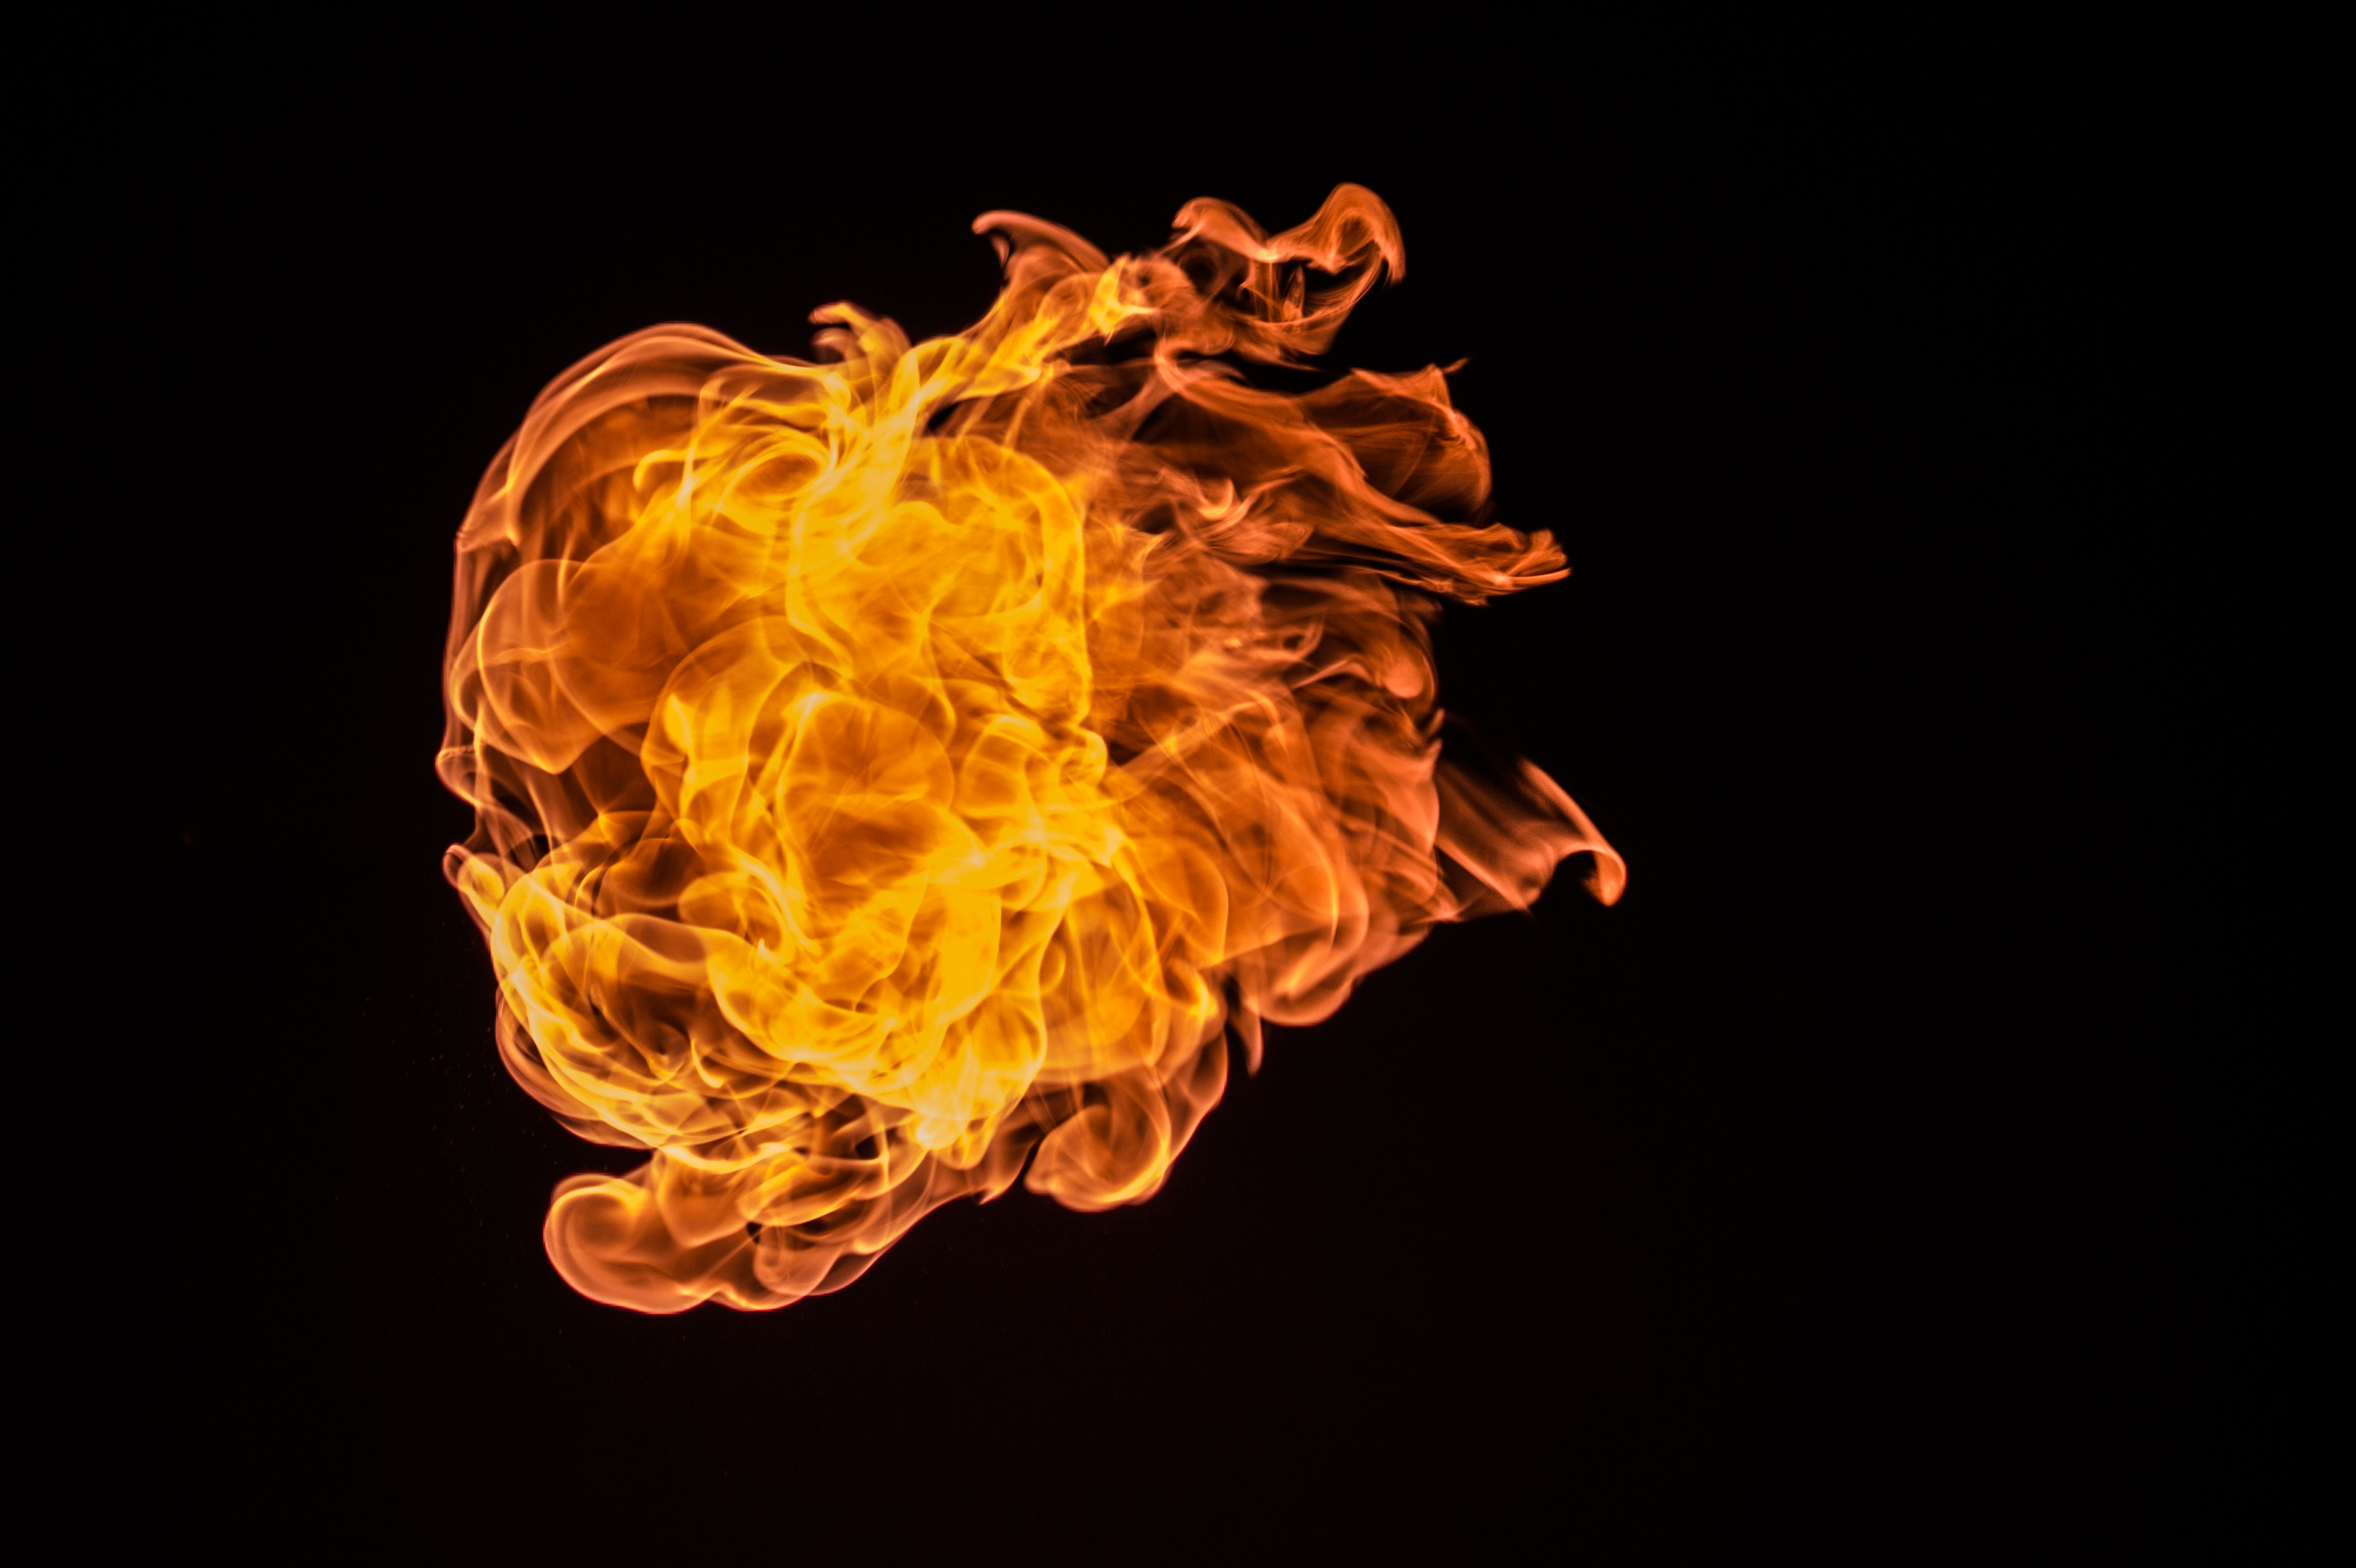 Red Fire With Black Background · Free Stock Photo